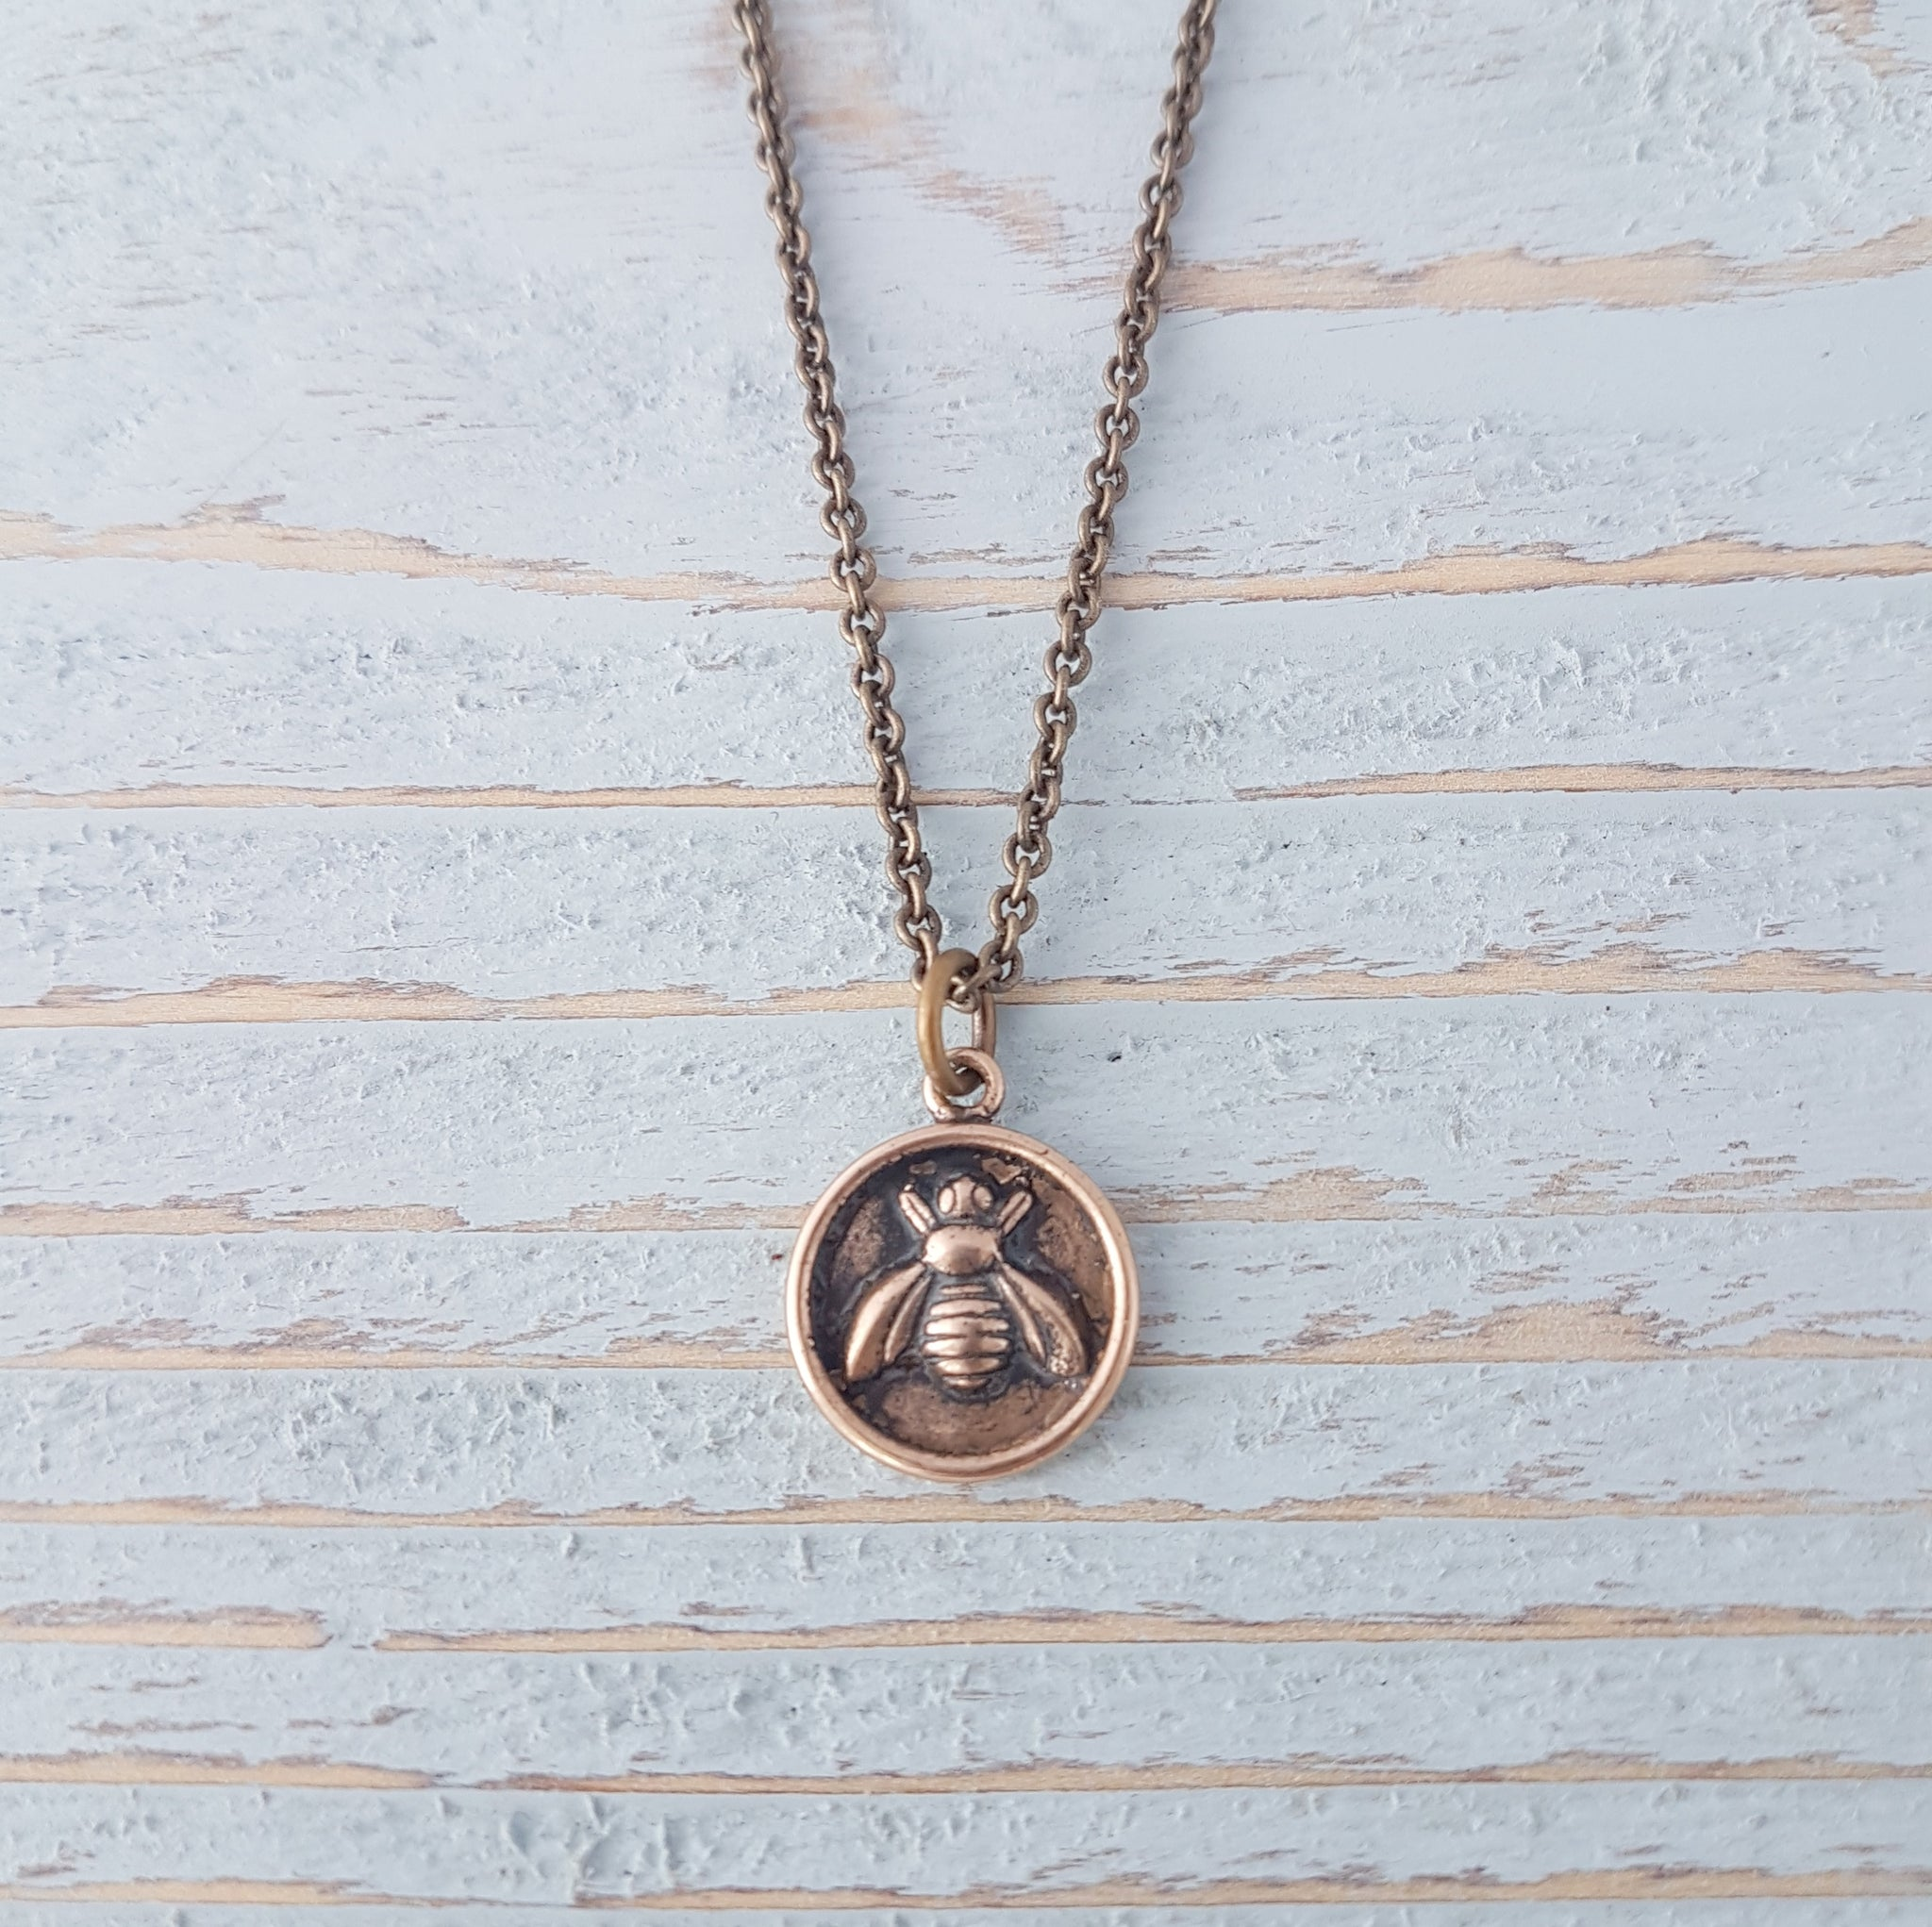 sacred hollowell honey logan beenecklace necklace gold bee front jewelry pendant initial products